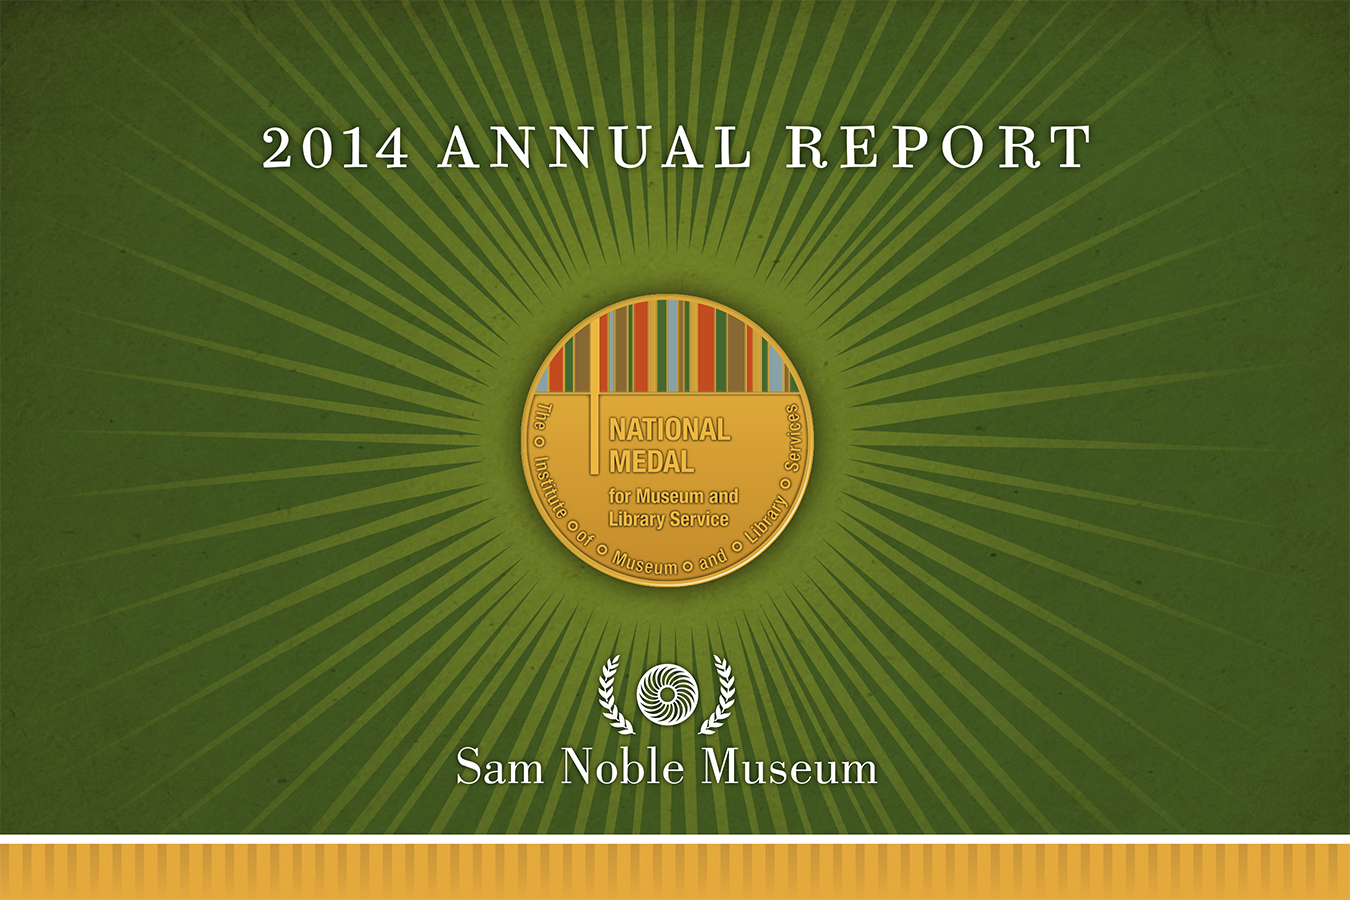 Link to 2014 Annual Report